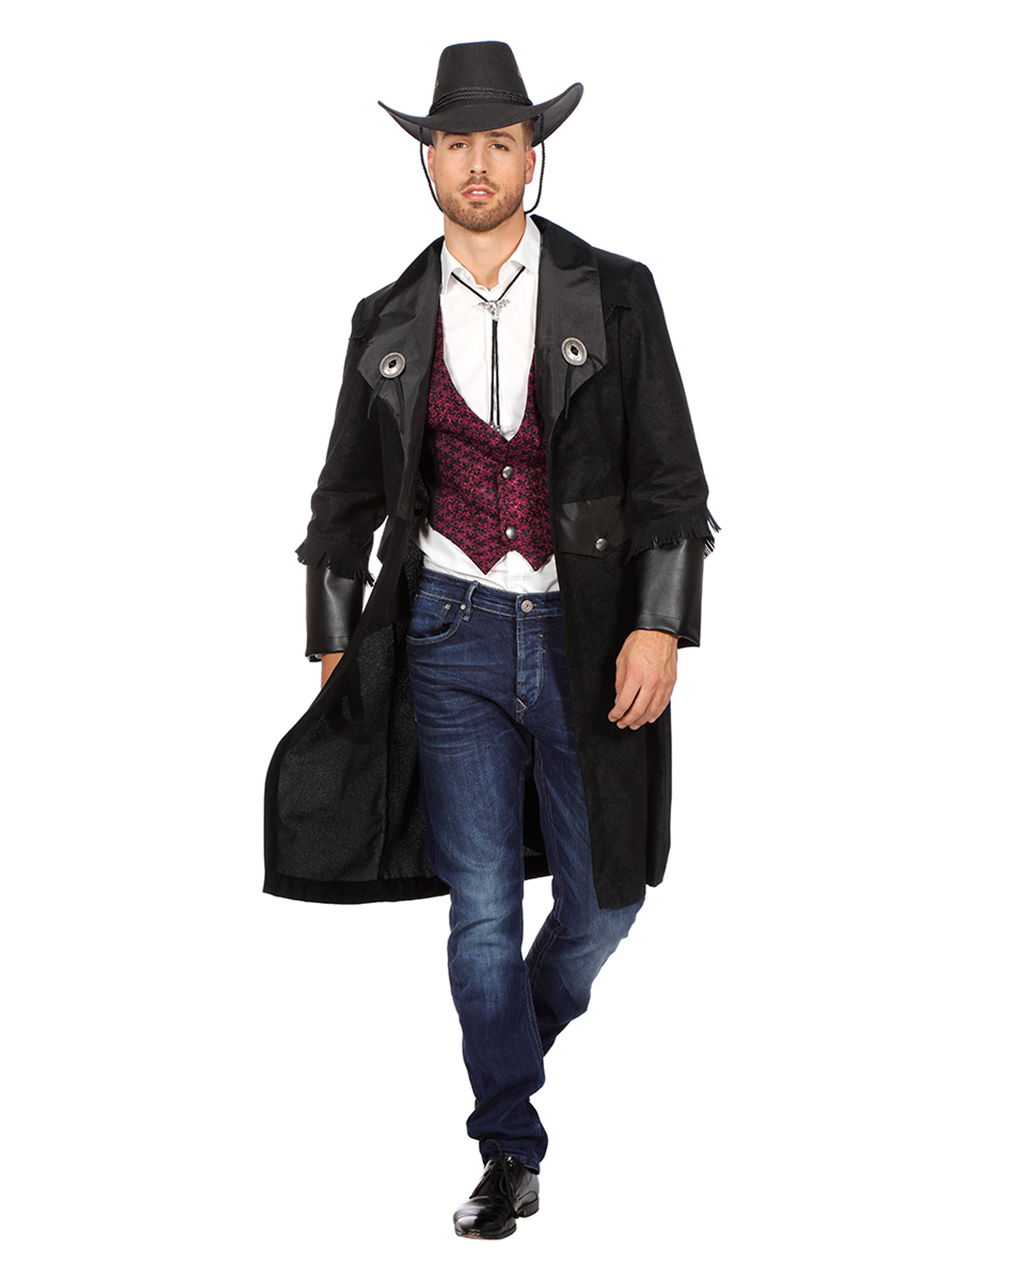 Cowboy Jacke Fur Herren Fur Faschings Kostume Horror Shop Com